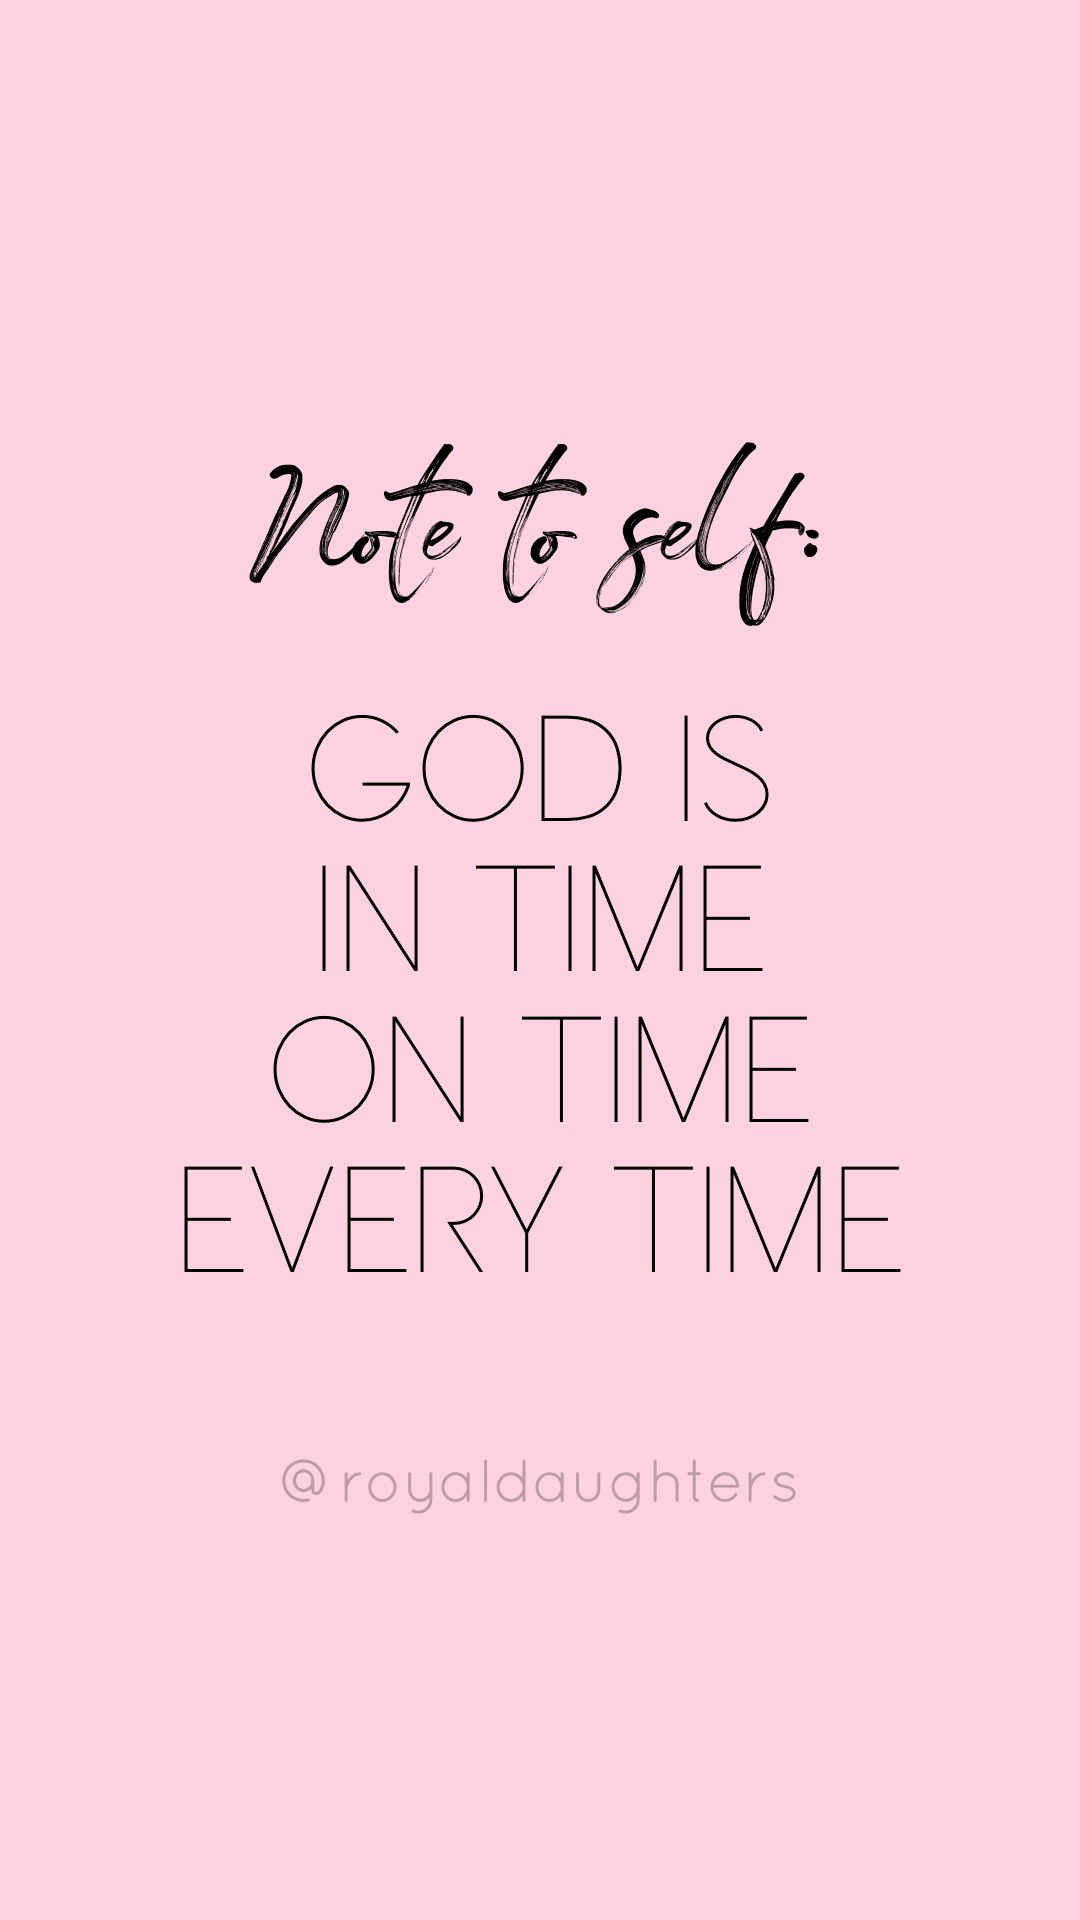 Note To Self God Is In Time On Time Every Time Inspirational Quote Iphone Pink Wallpaper Inspirational Quotes Motivational Quotes For Women Quotes